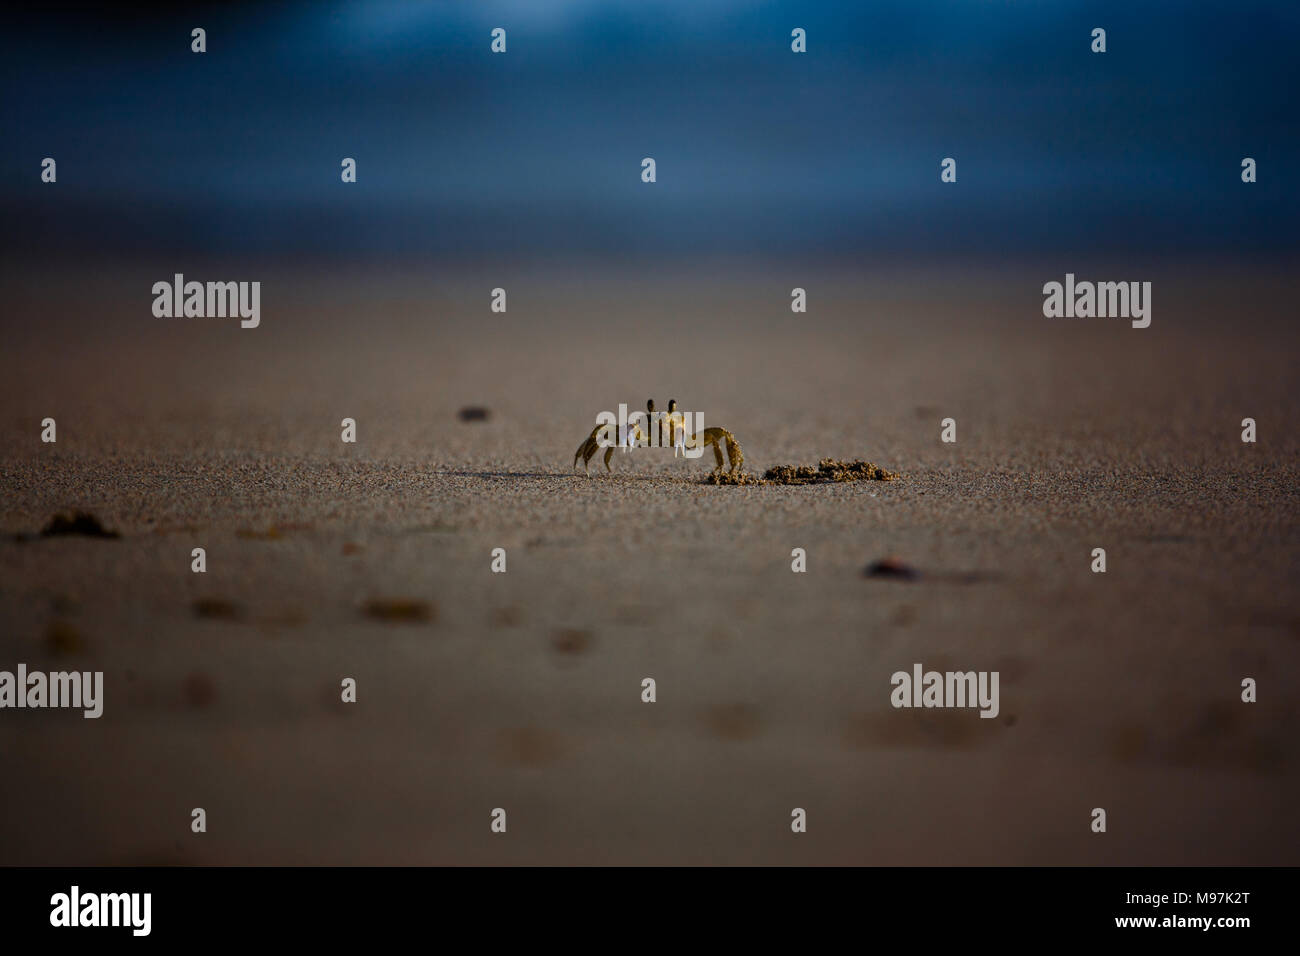 A yellow land crab scuttles across a beach in Grenada, Caribbean - Stock Image